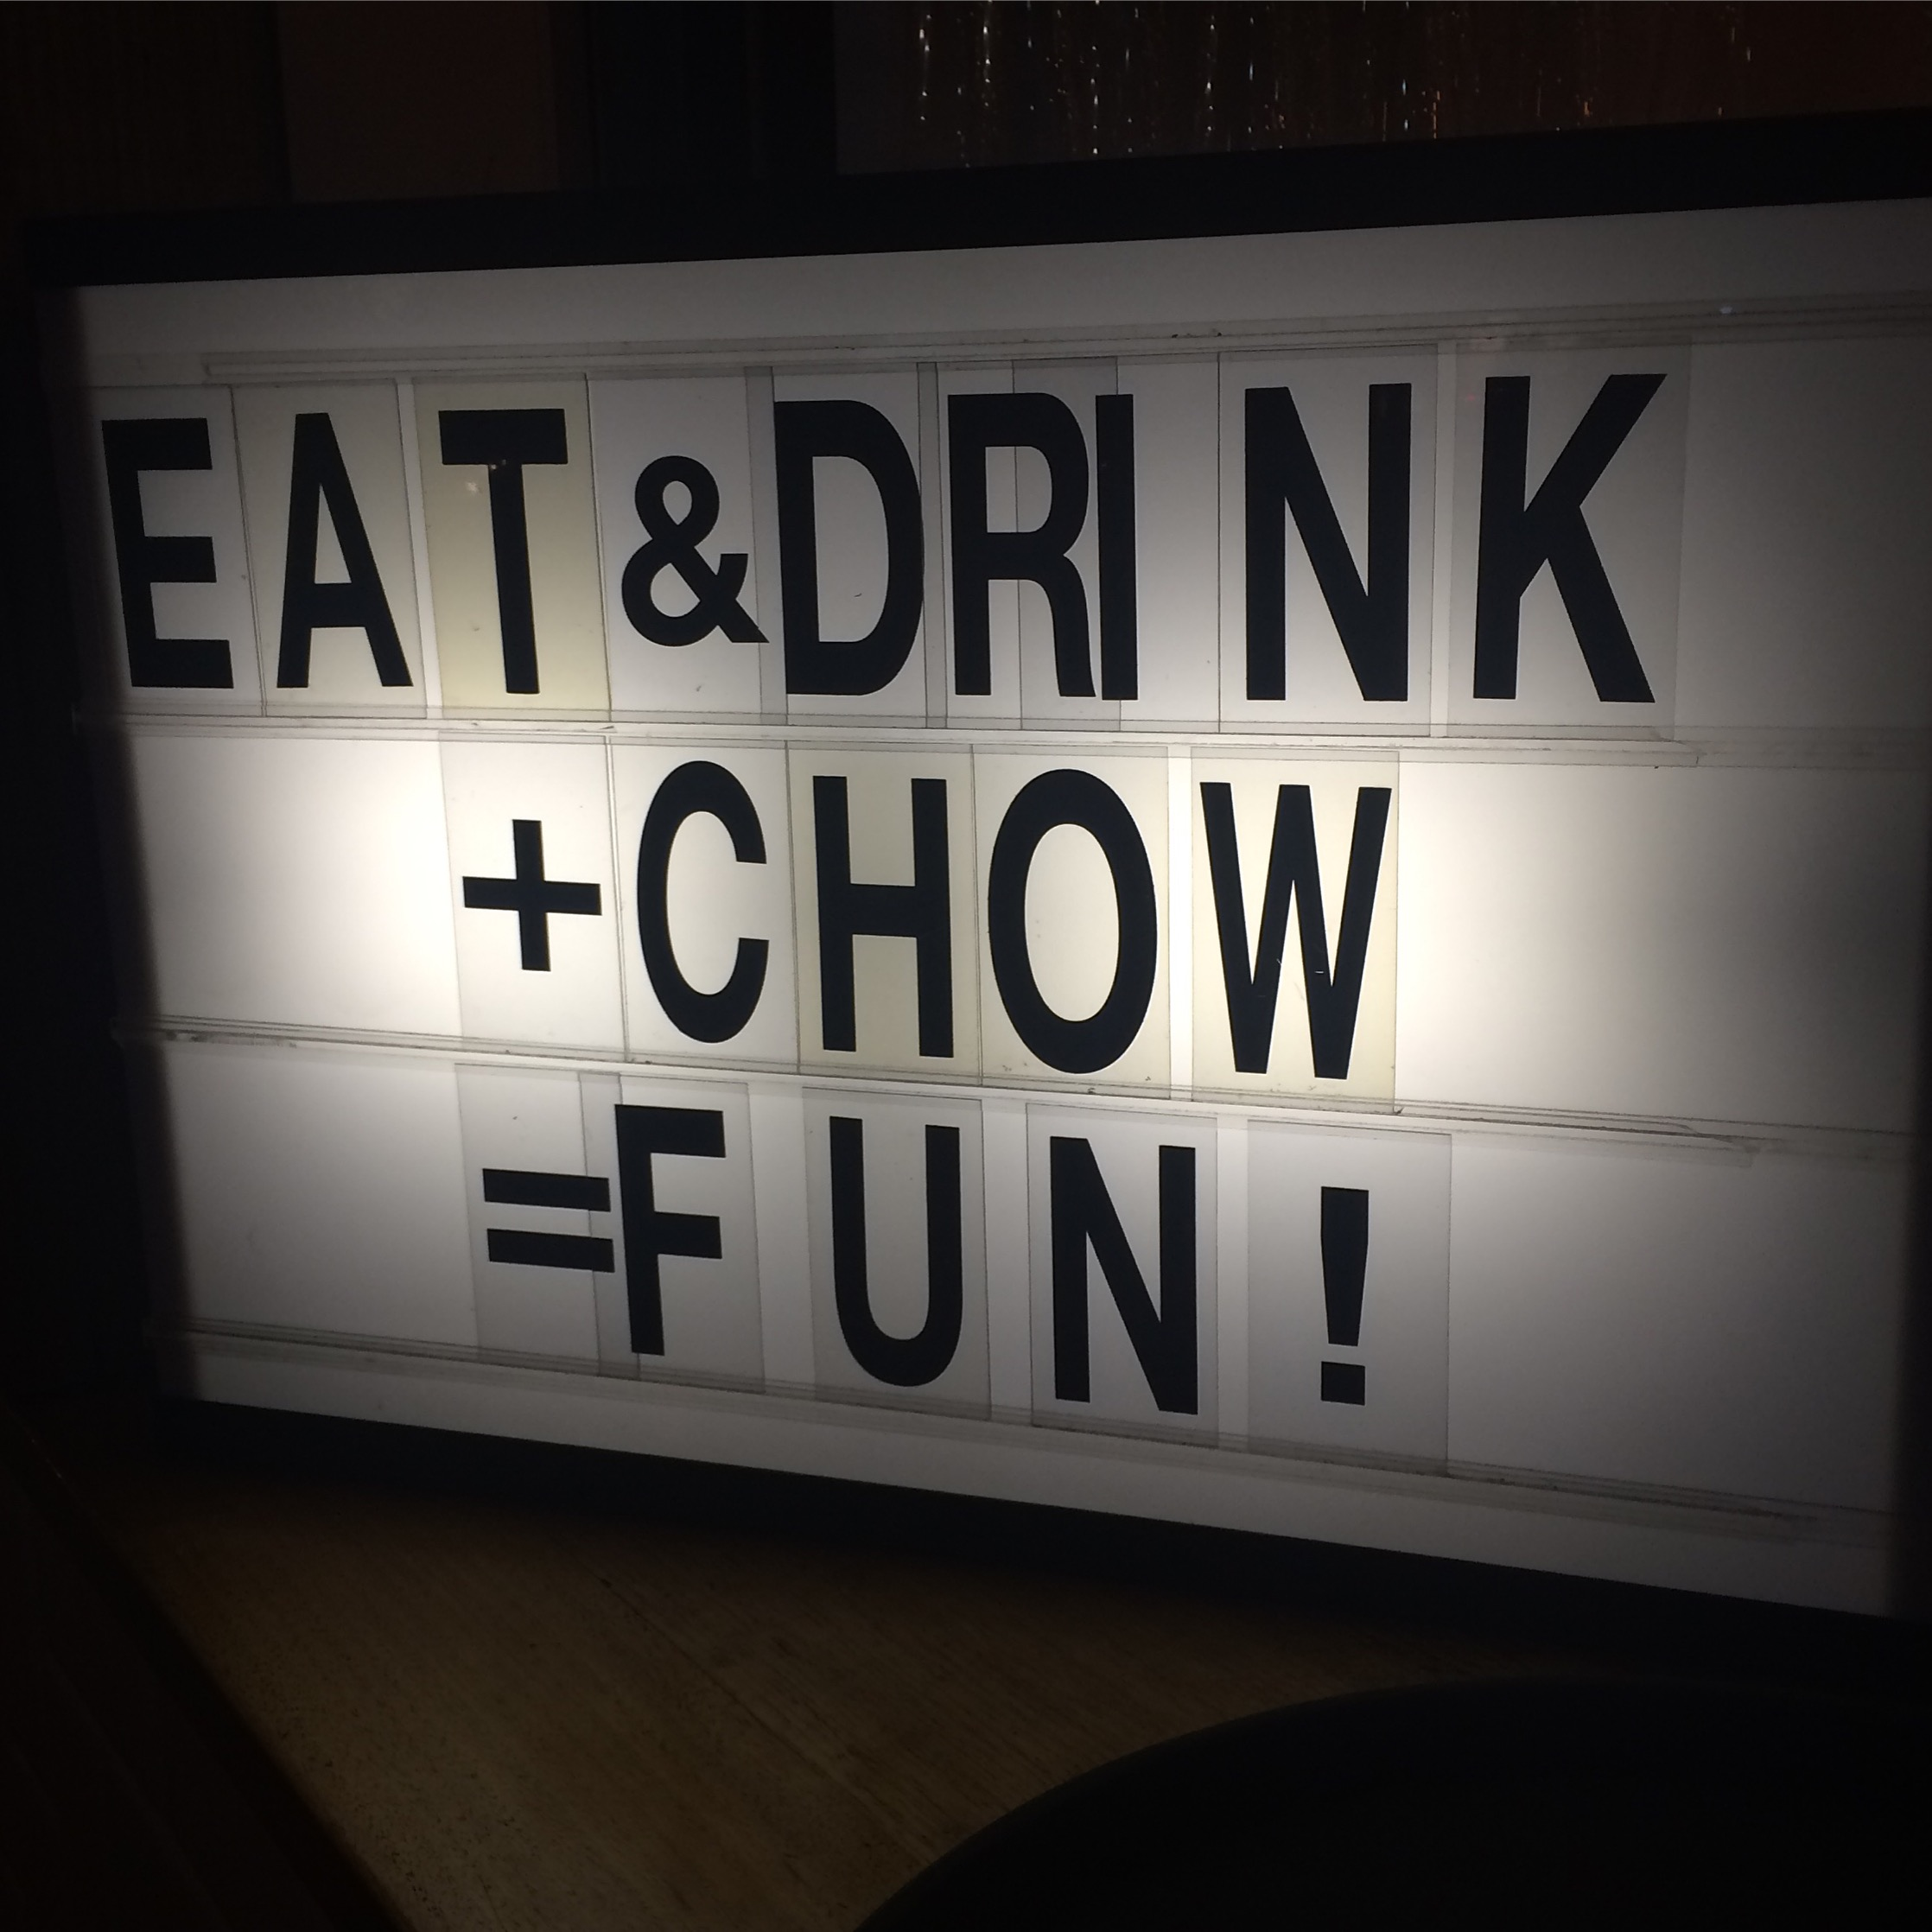 Chow House in James Street. Such a great spot and this is definitely our mantra for the weekend!